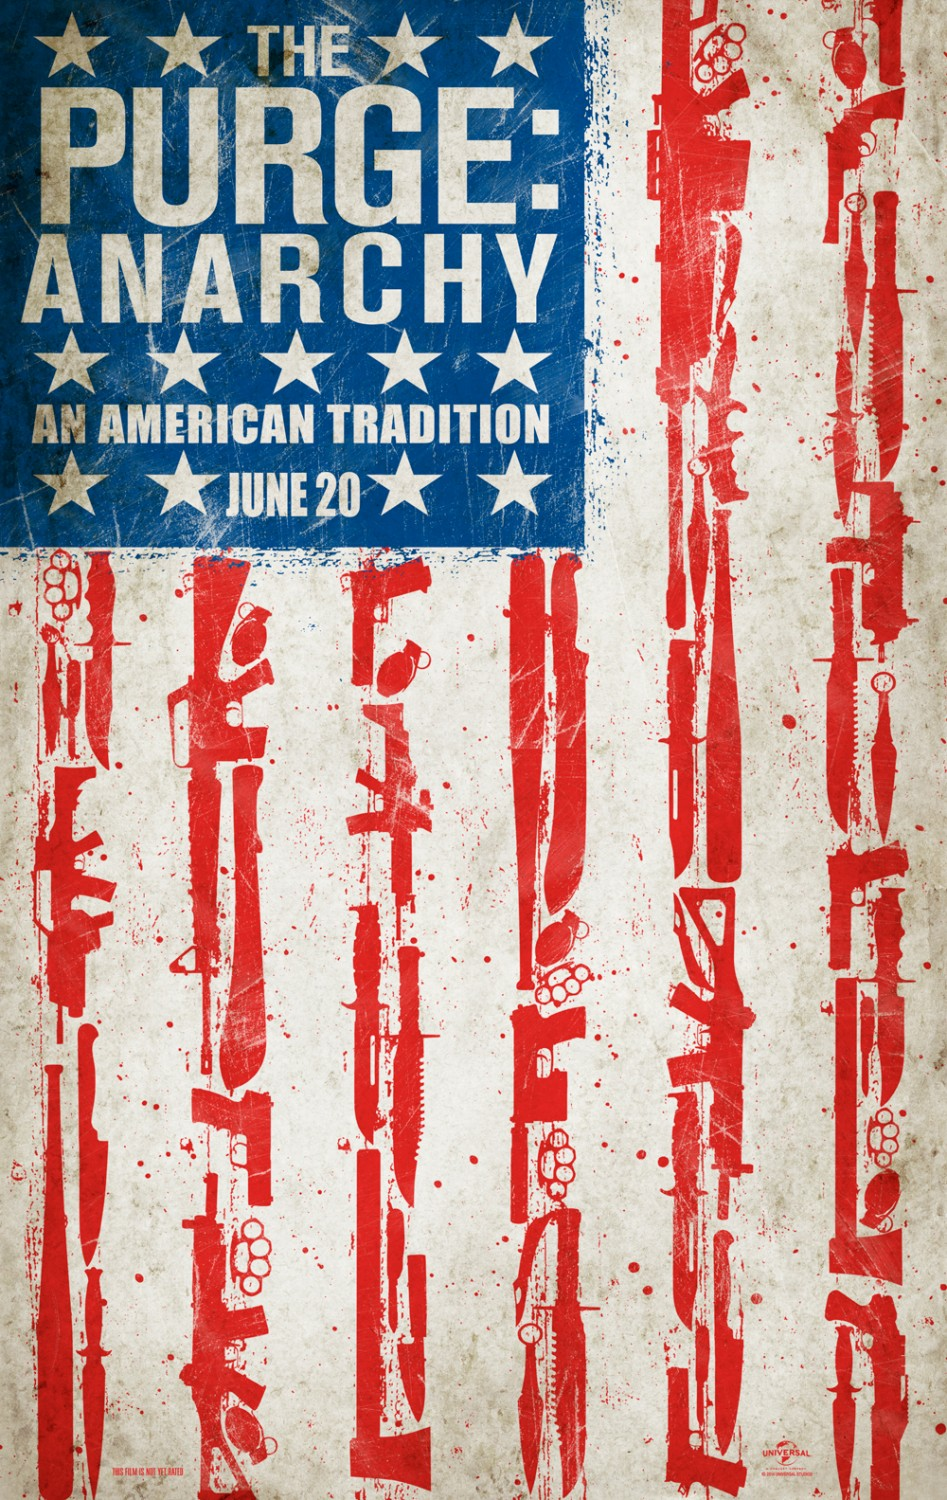 The Purge Anarchy-Official Poster Banner PROMO XLG-13FEVEREIRO2014